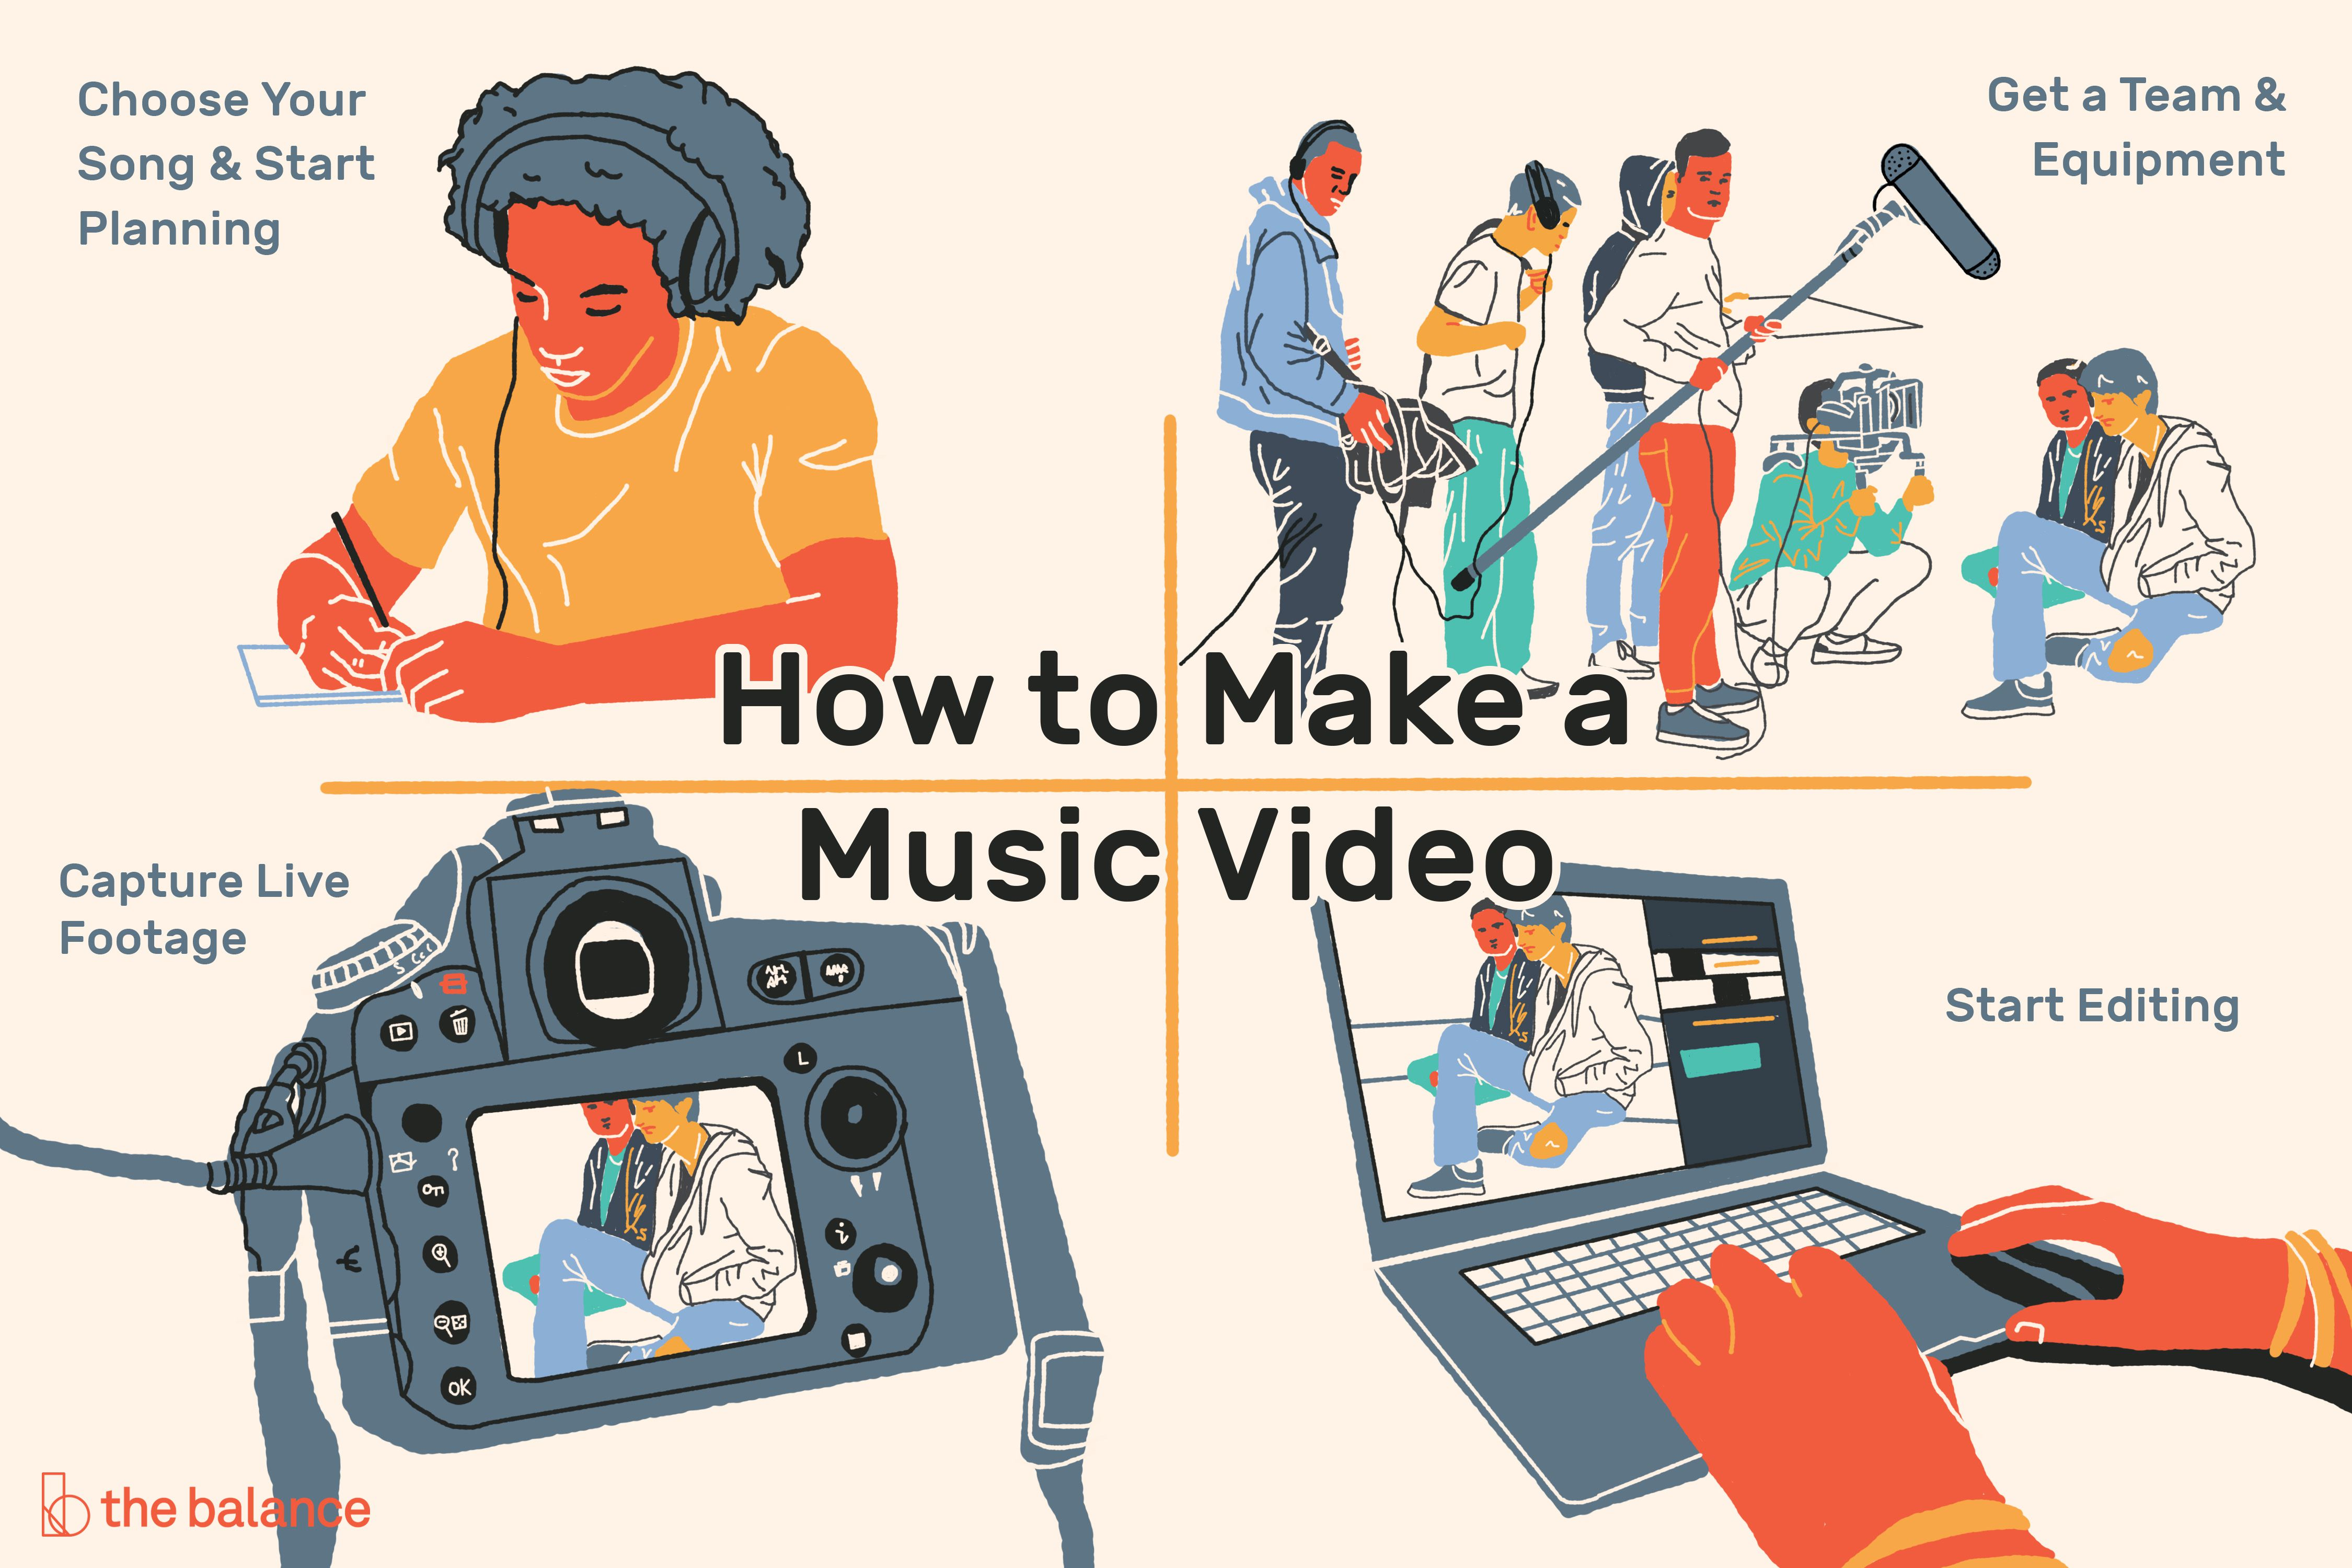 Step-By-Step Guide to Making a Music Video